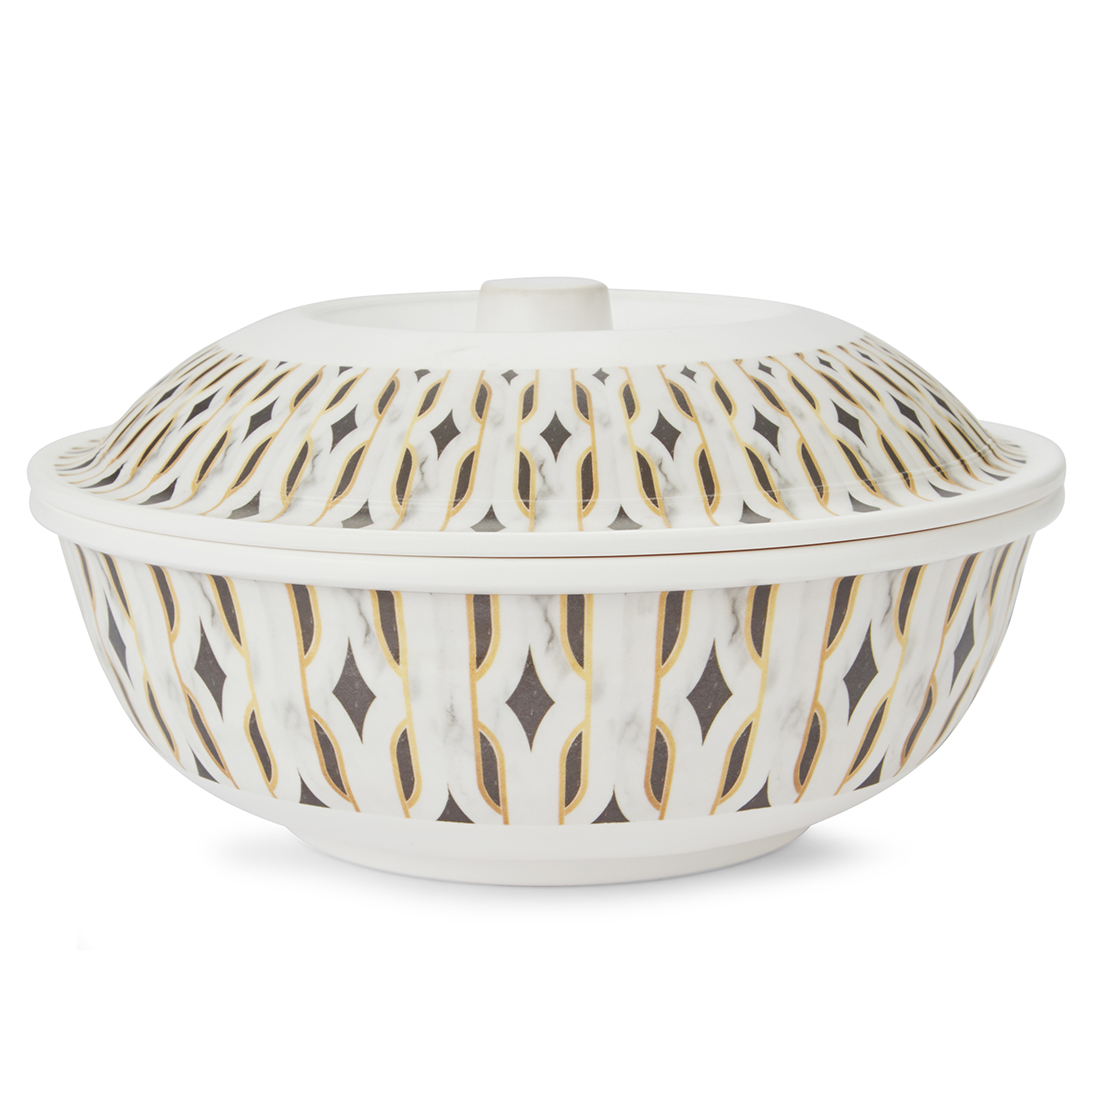 Chrysler Serving Bowl With Lid Serving Bowls in Black & White Colour by Living Essence